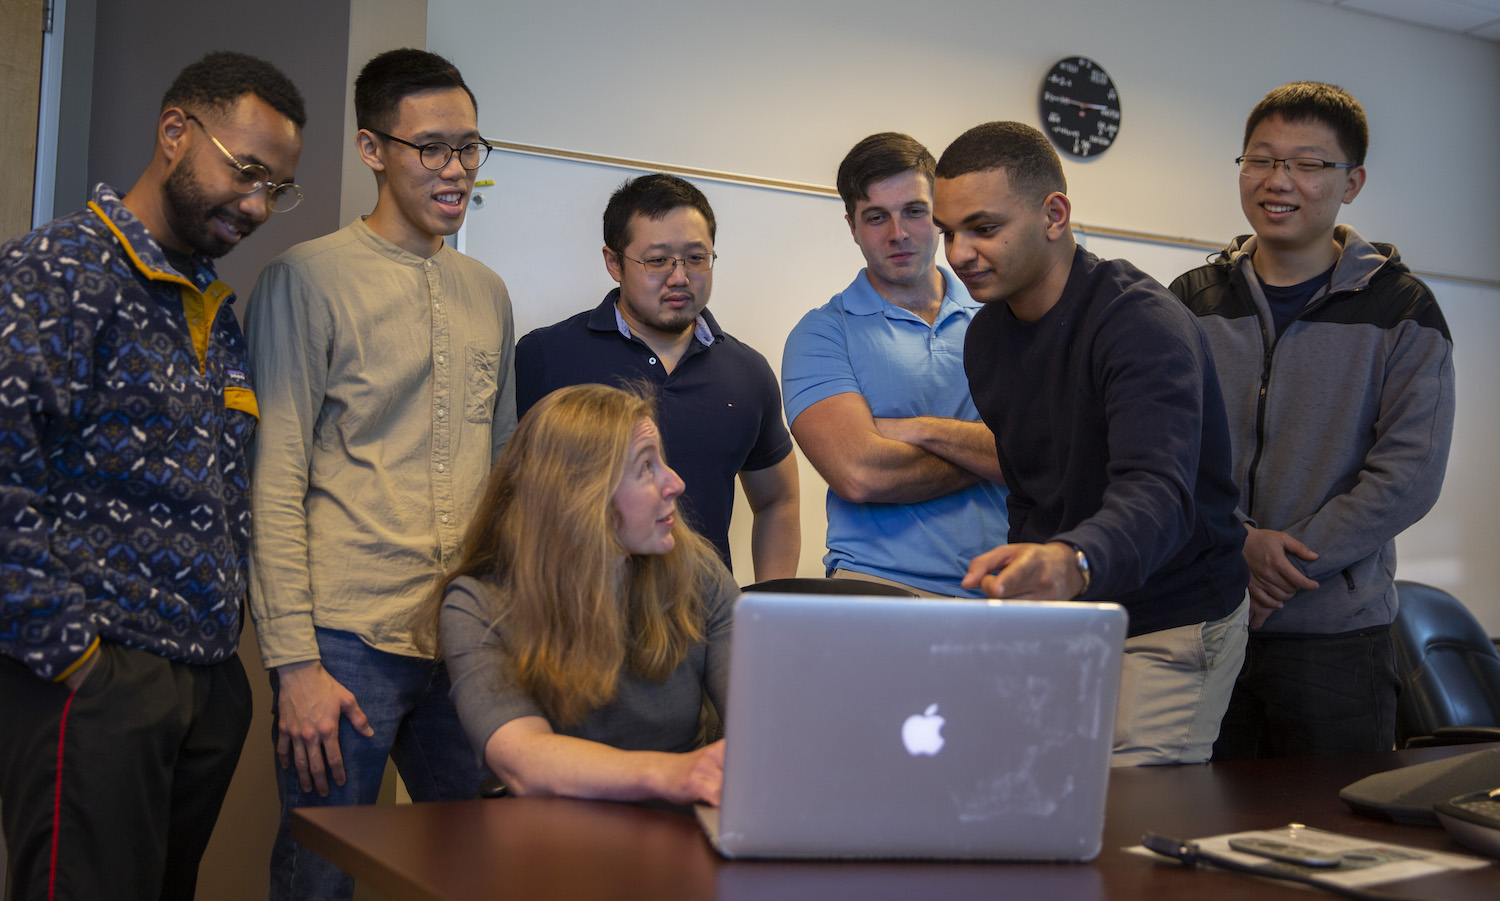 professor and students looking at a computer together